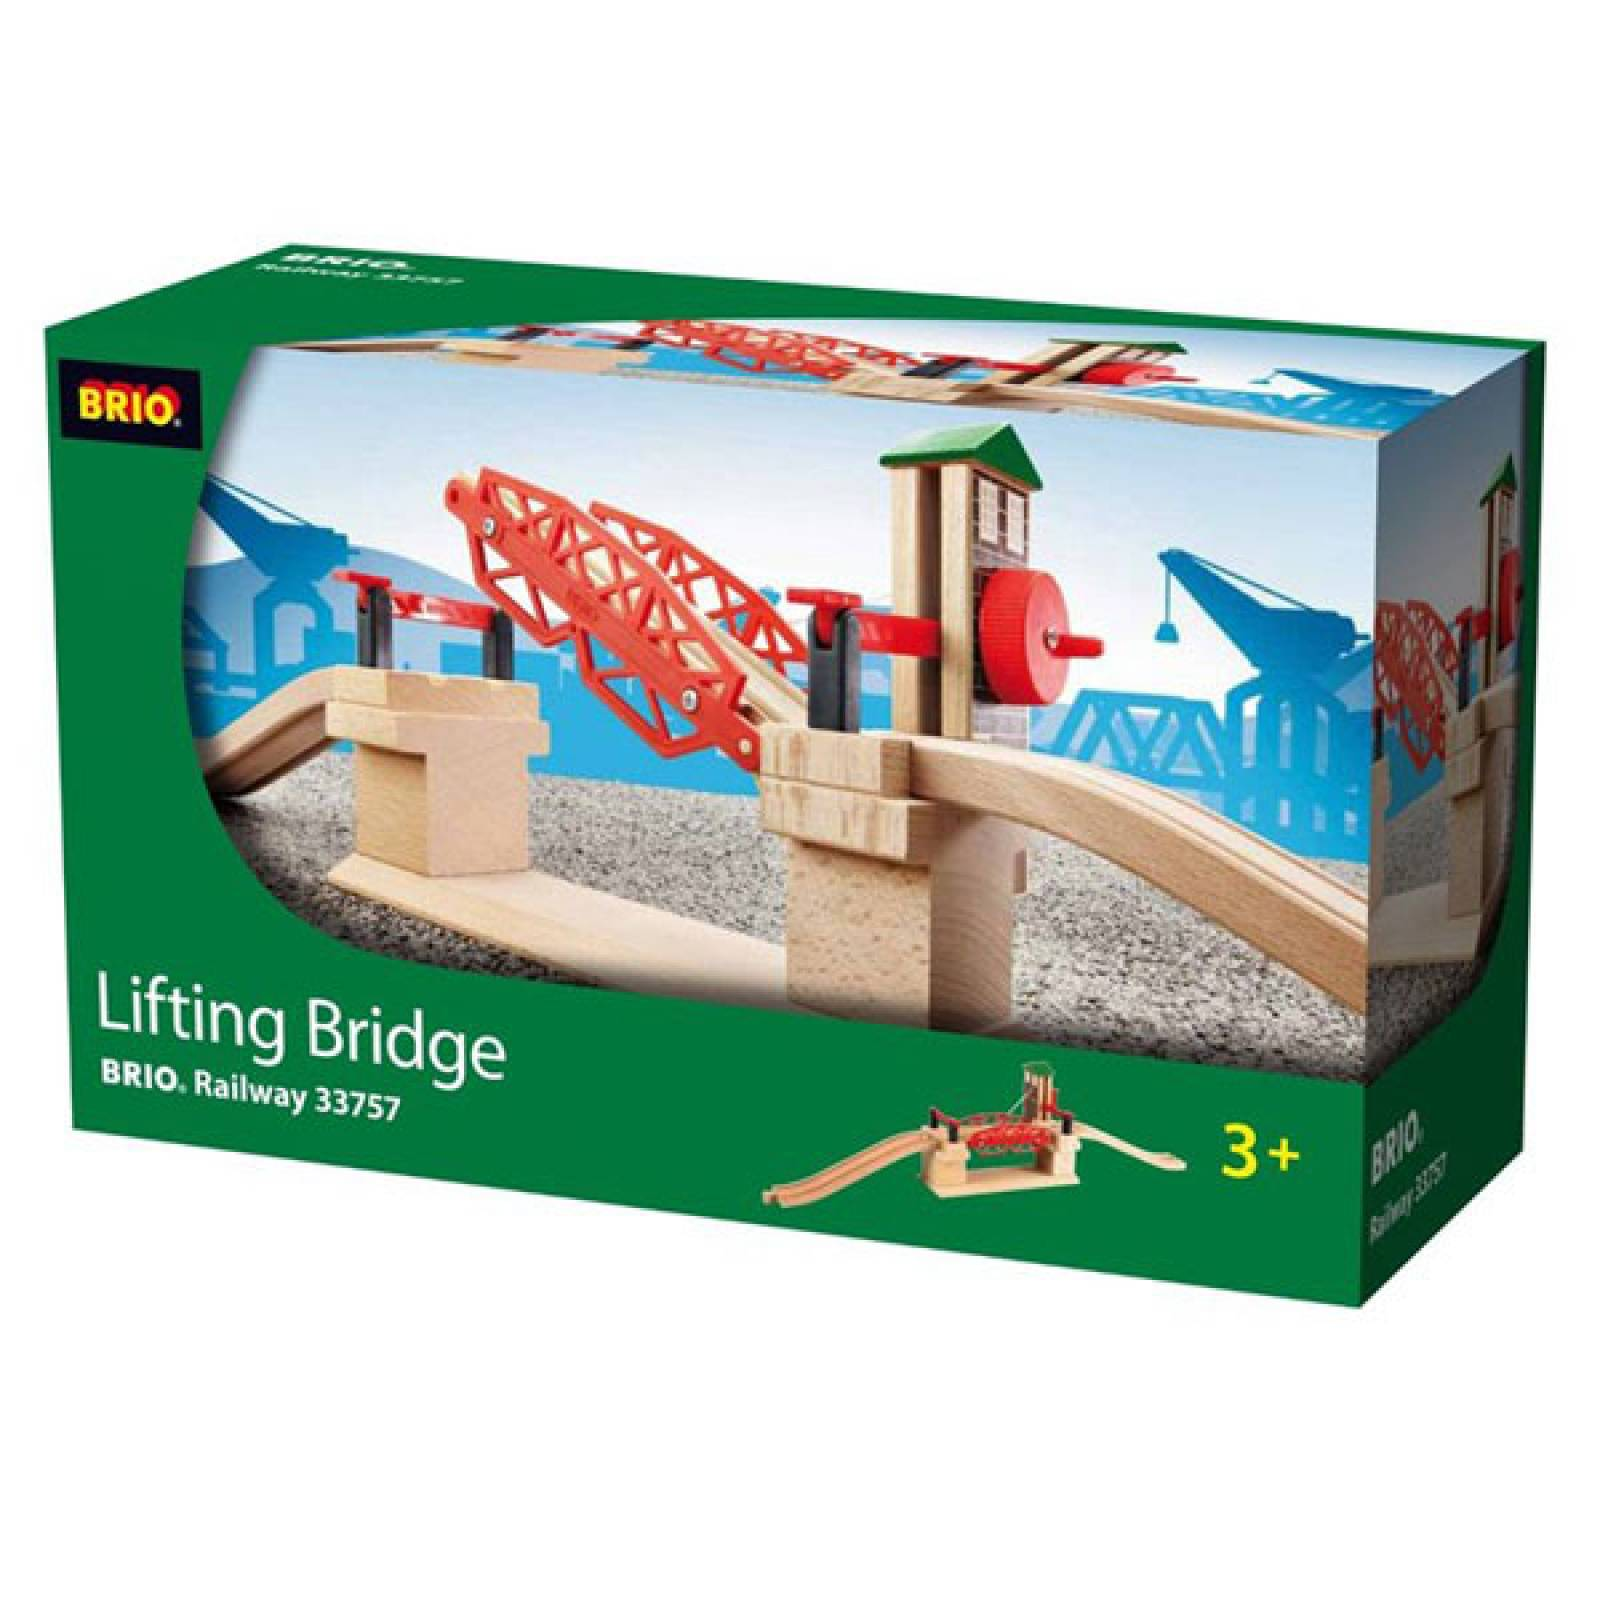 Lifting Bridge BRIO® Wooden Railway Age 3+ thumbnails